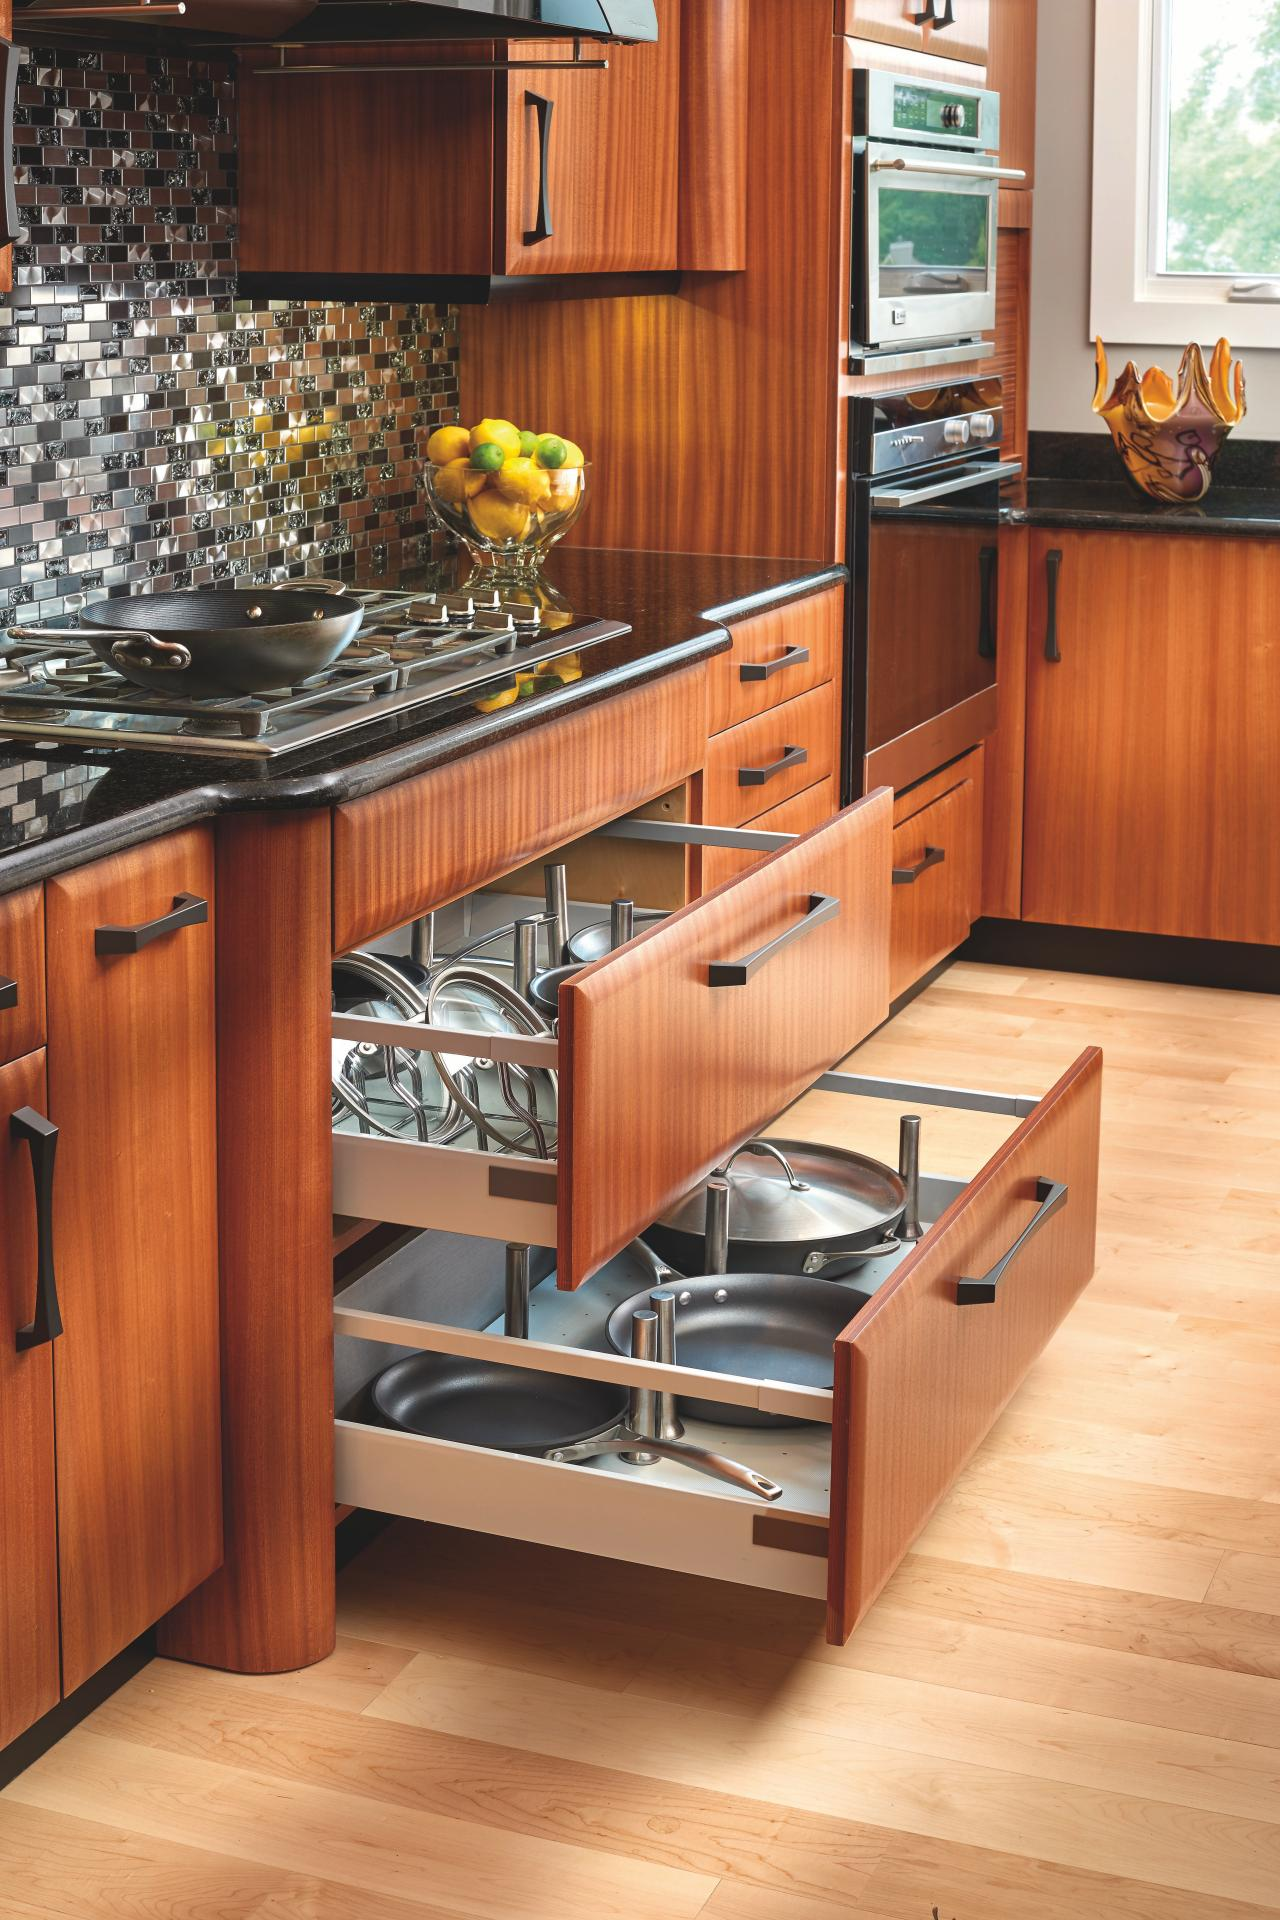 Pot and pan storage drawers in kitchen hgtv for Kitchen cabinet options design